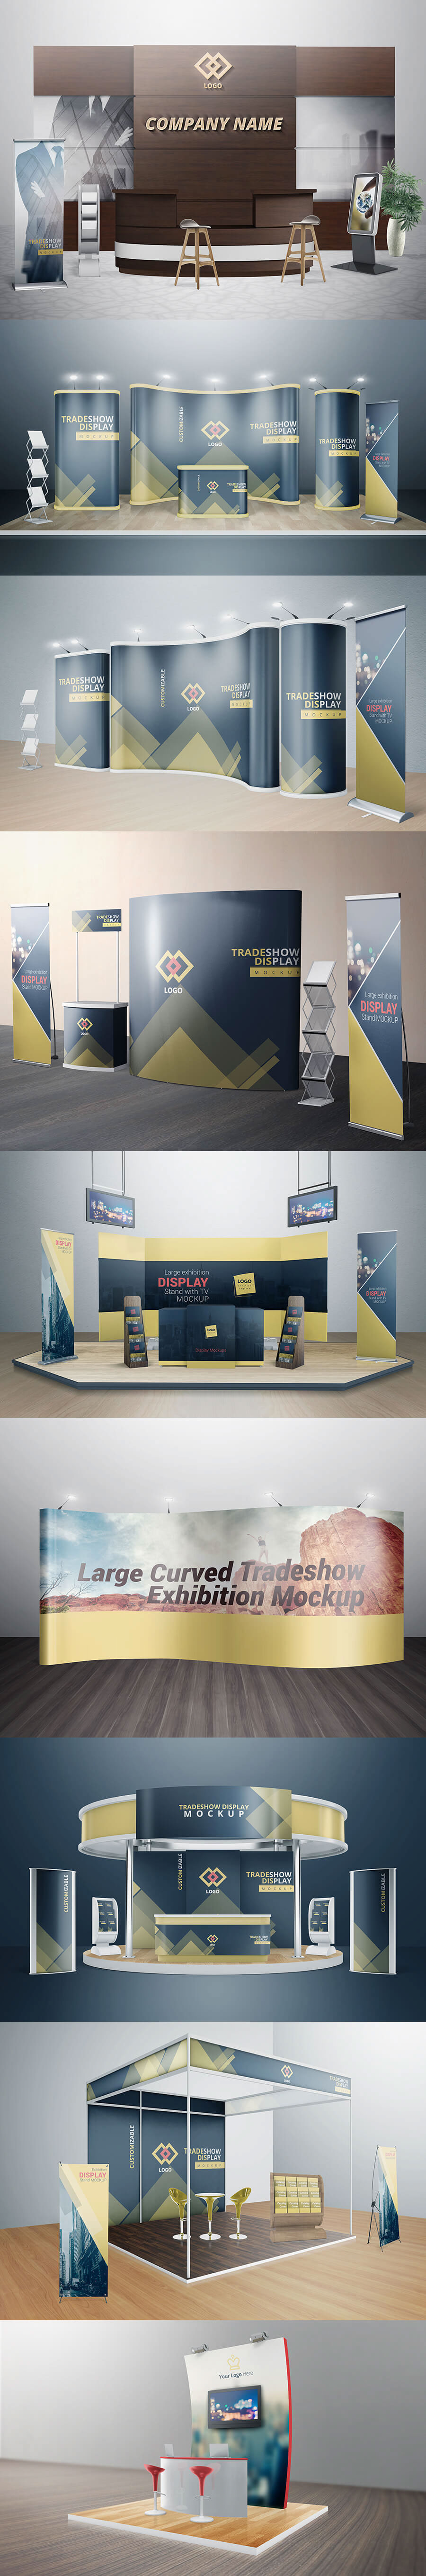 Exhibition Booth Mockup : Various tradeshow exhibition booth mockups on behance